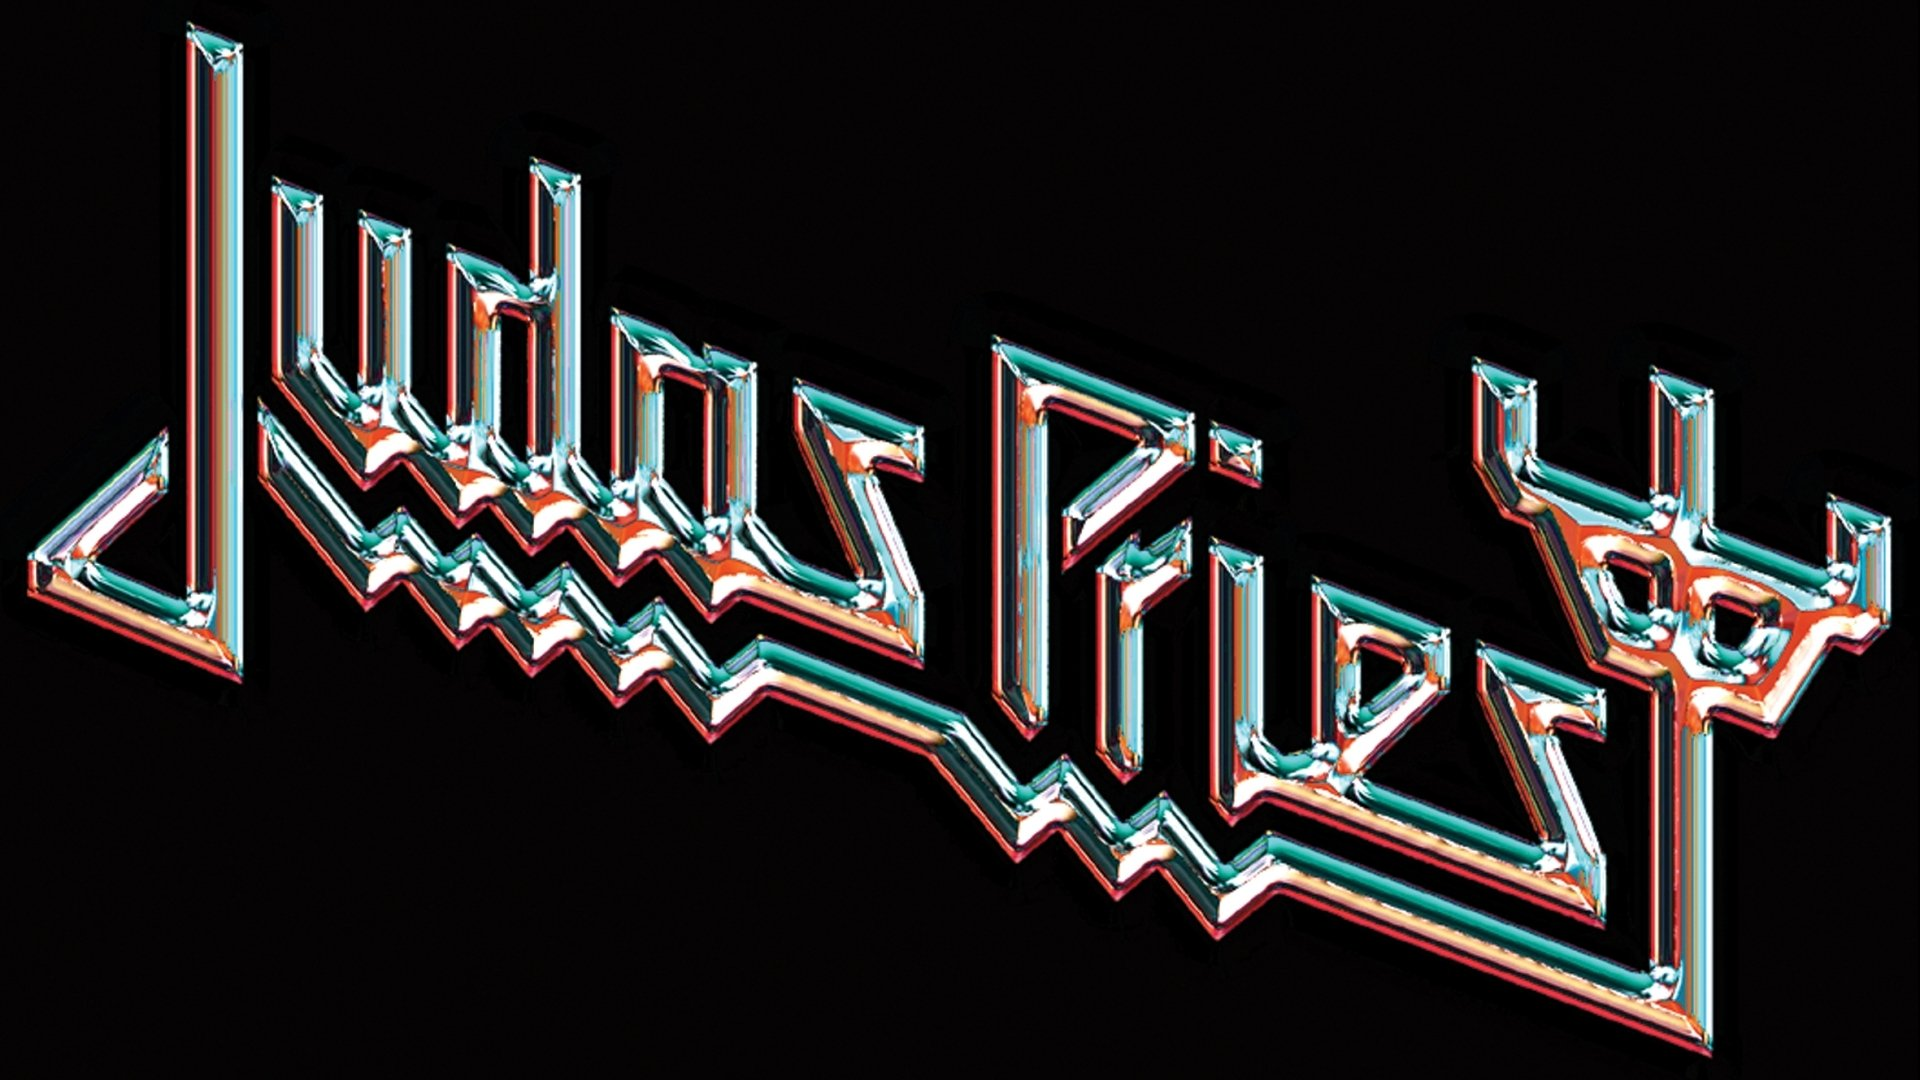 41 Judas Priest Hd Wallpapers Background Images Wallpaper Abyss